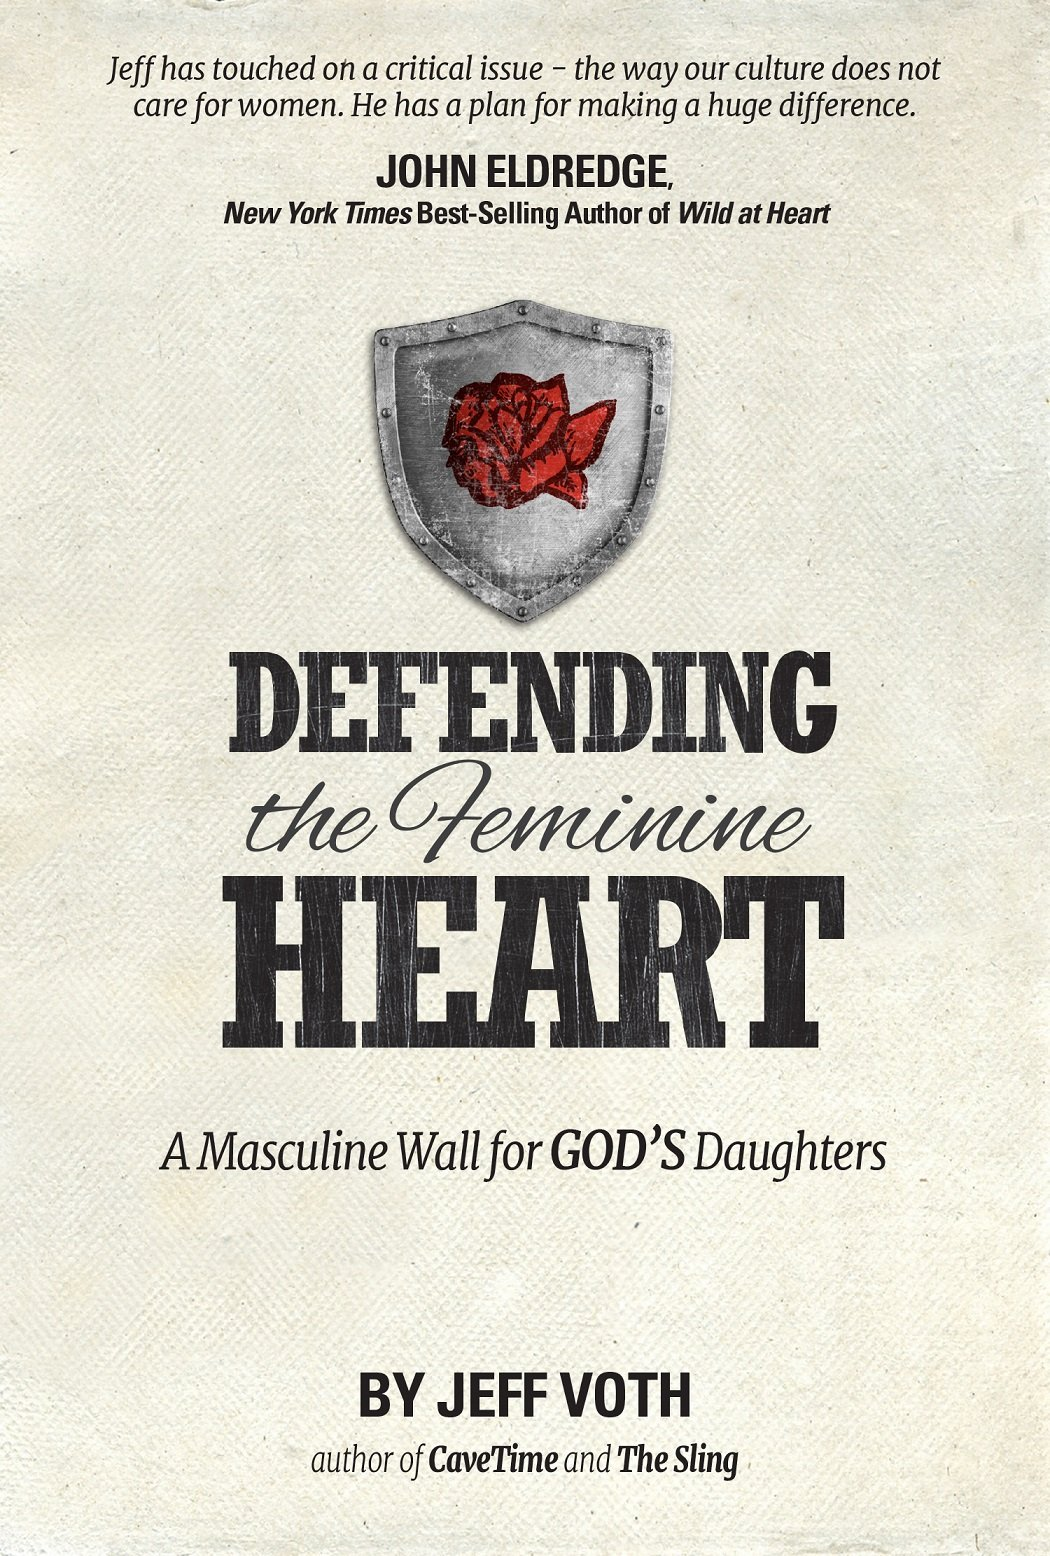 Defending the feminine heart a masculine wall for gods daughters defending the feminine heart a masculine wall for gods daughters jeff voth 9781938021459 amazon books fandeluxe Choice Image